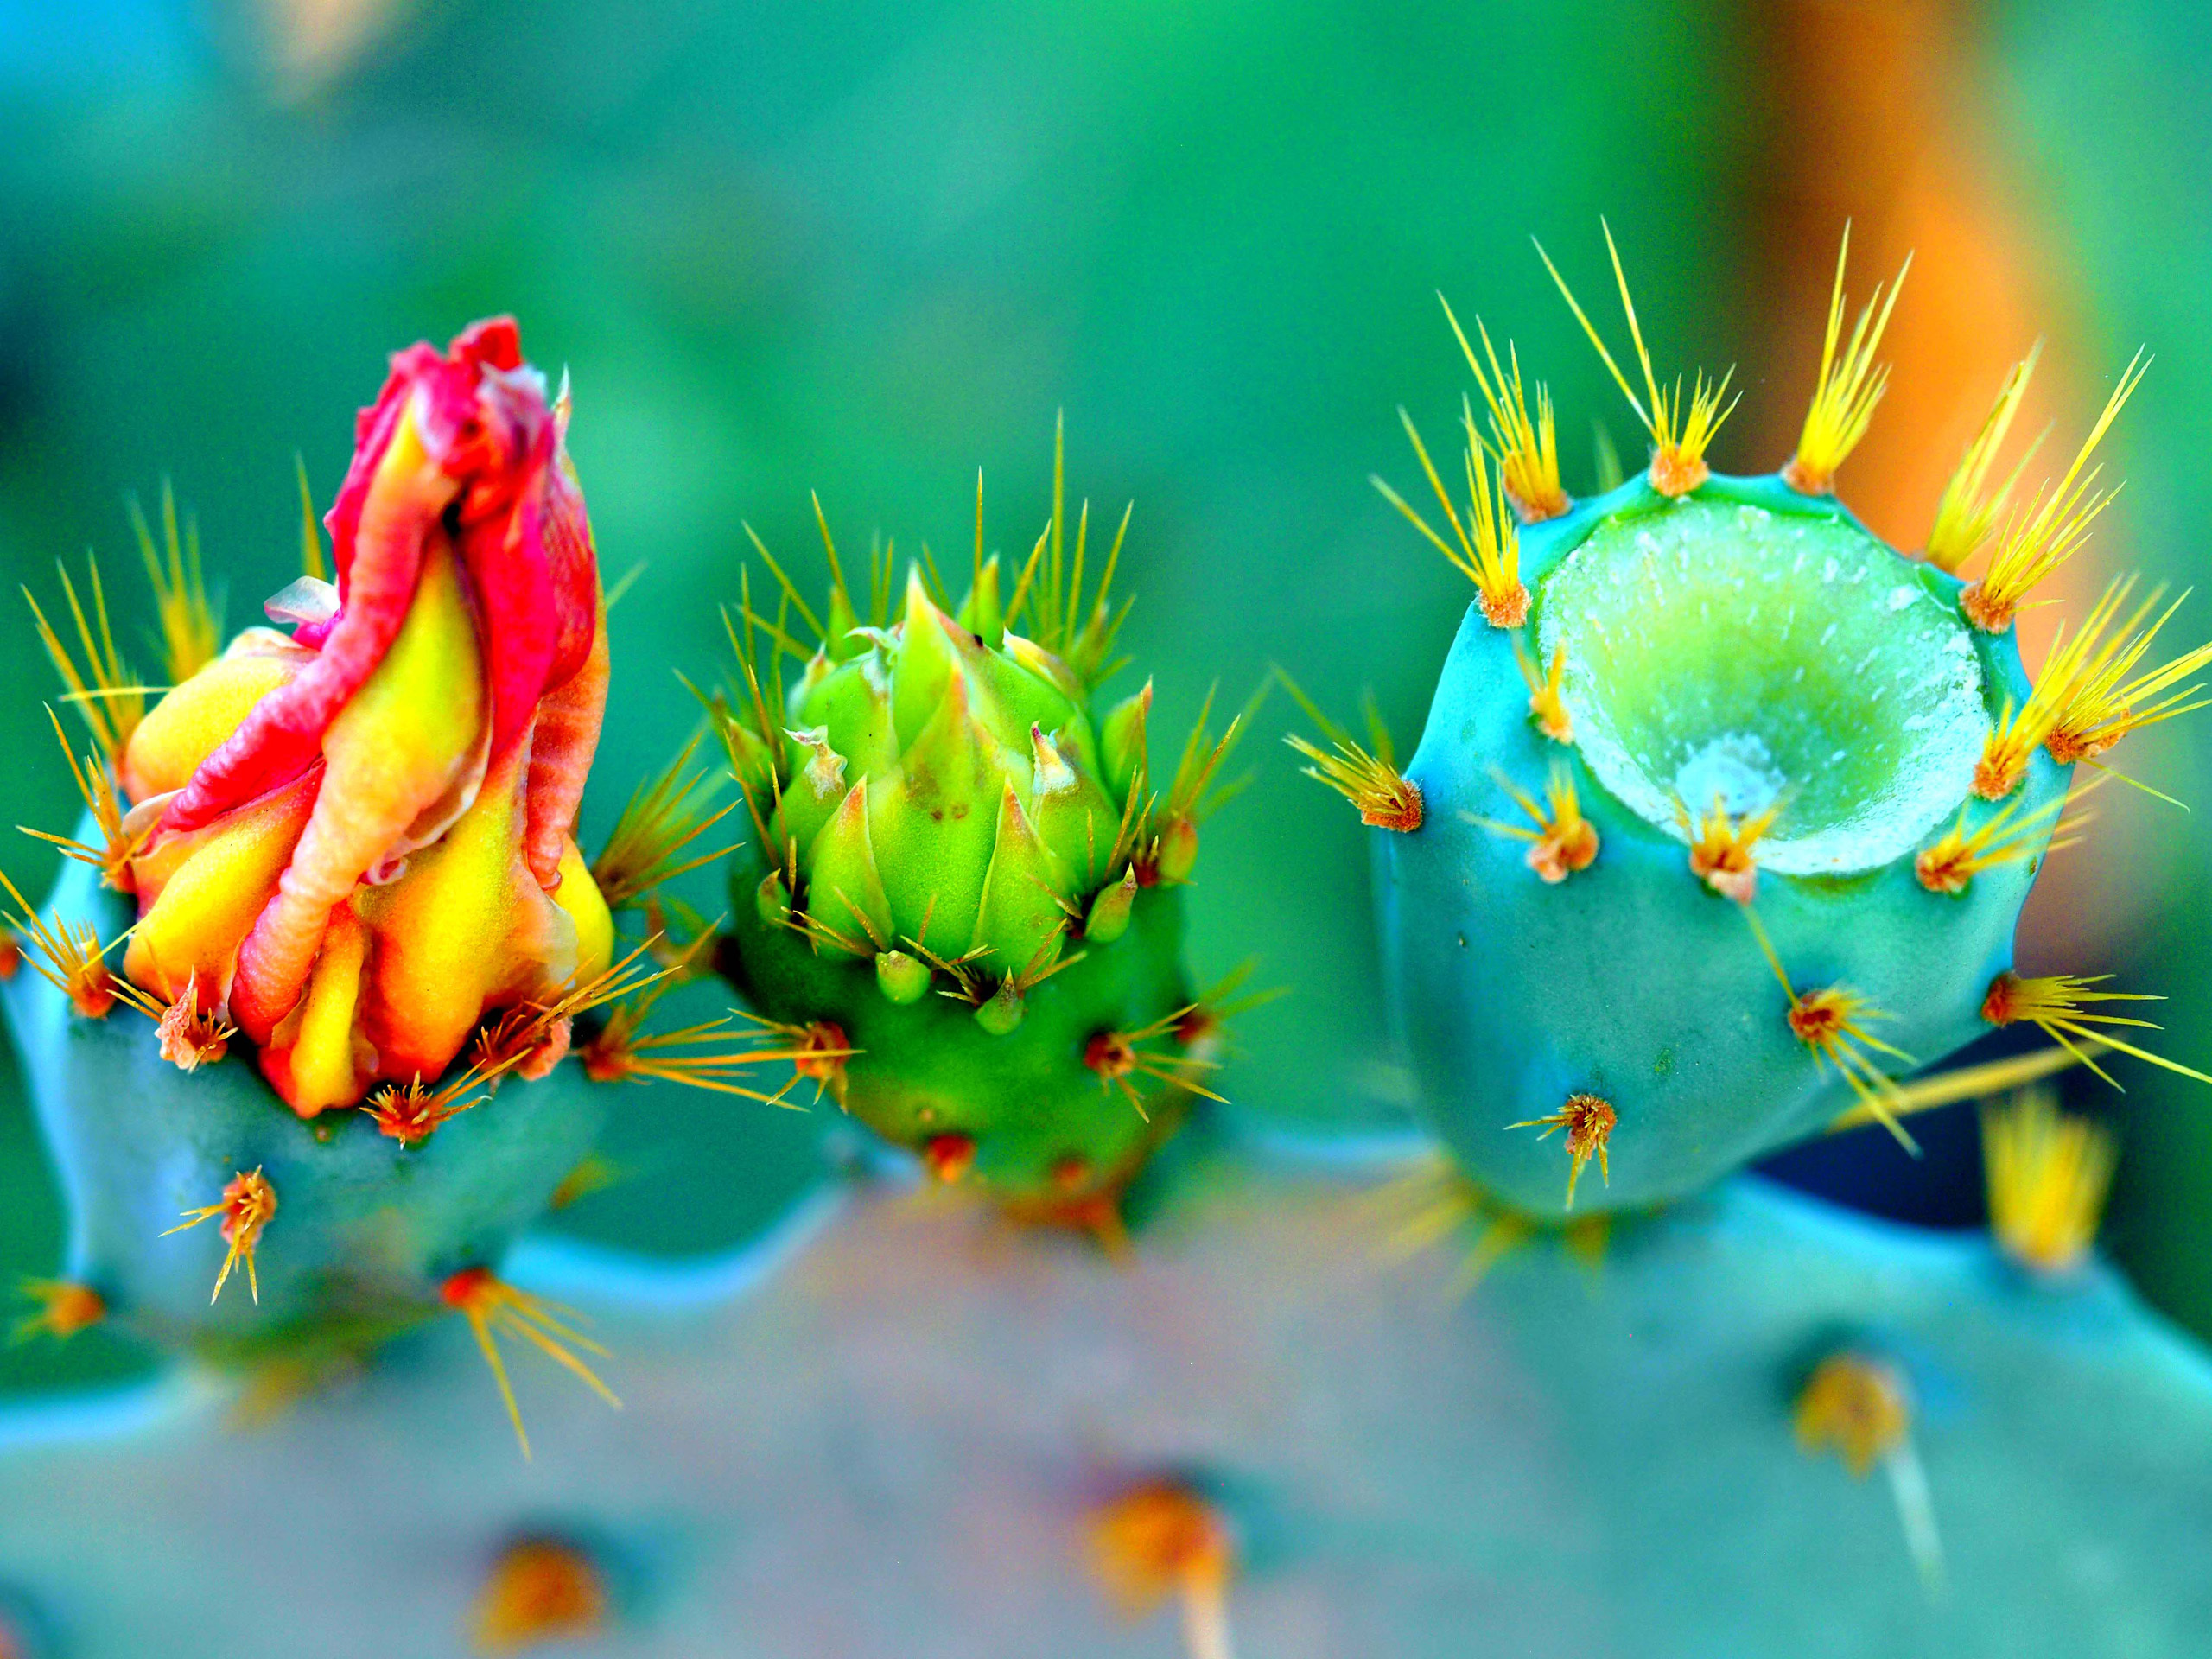 Popular Cactus images for mobile phone